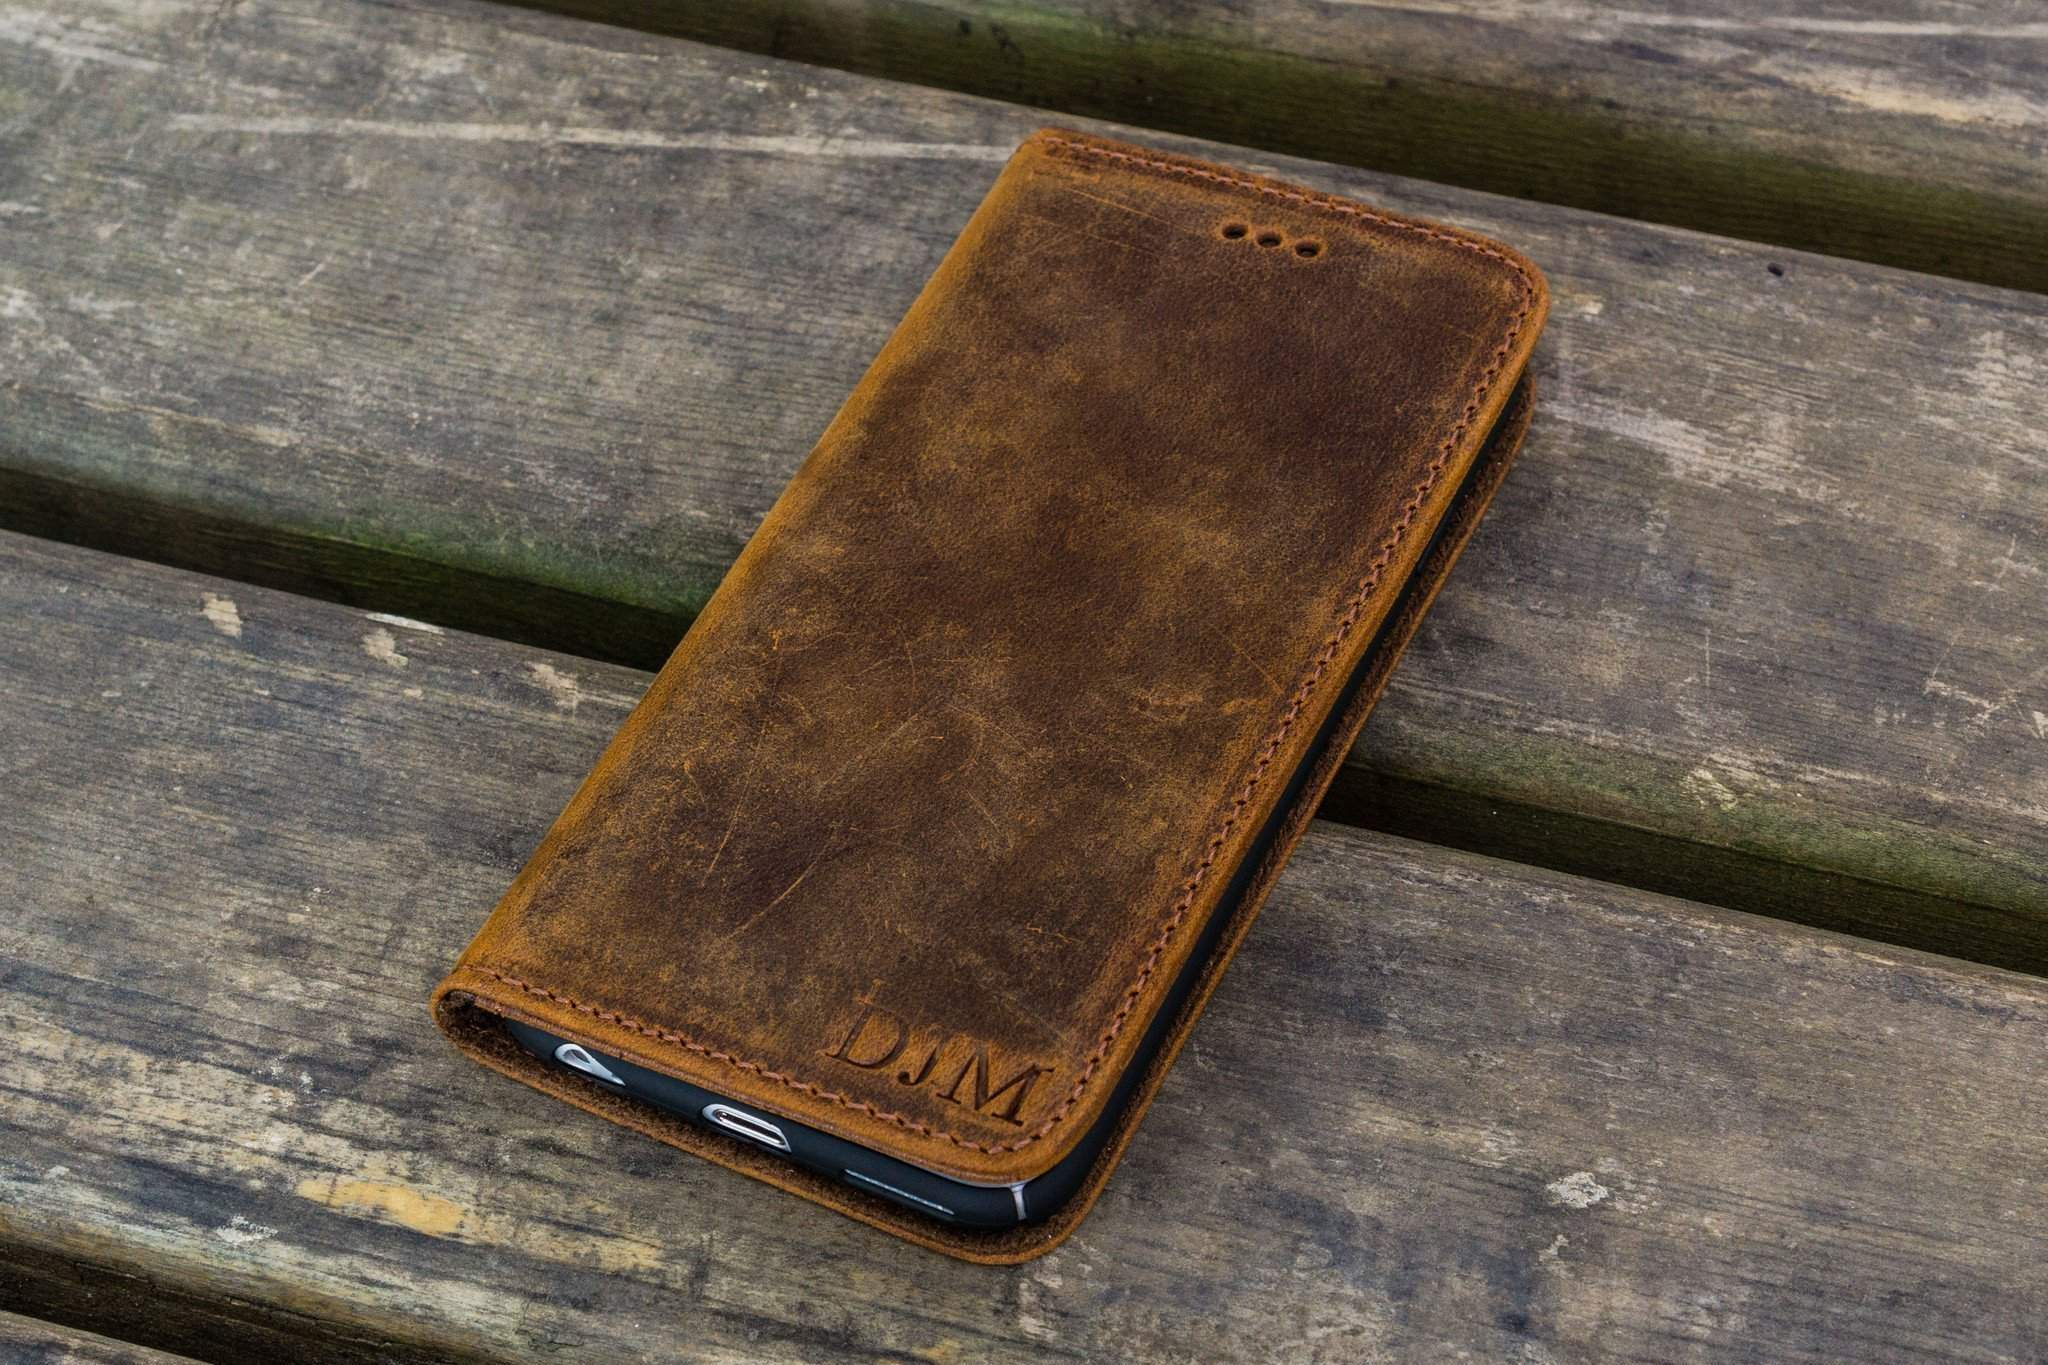 Free Monogramming Leather iPhone 7 case wallet Handmade iPhone case wallet Leather iPhone all models